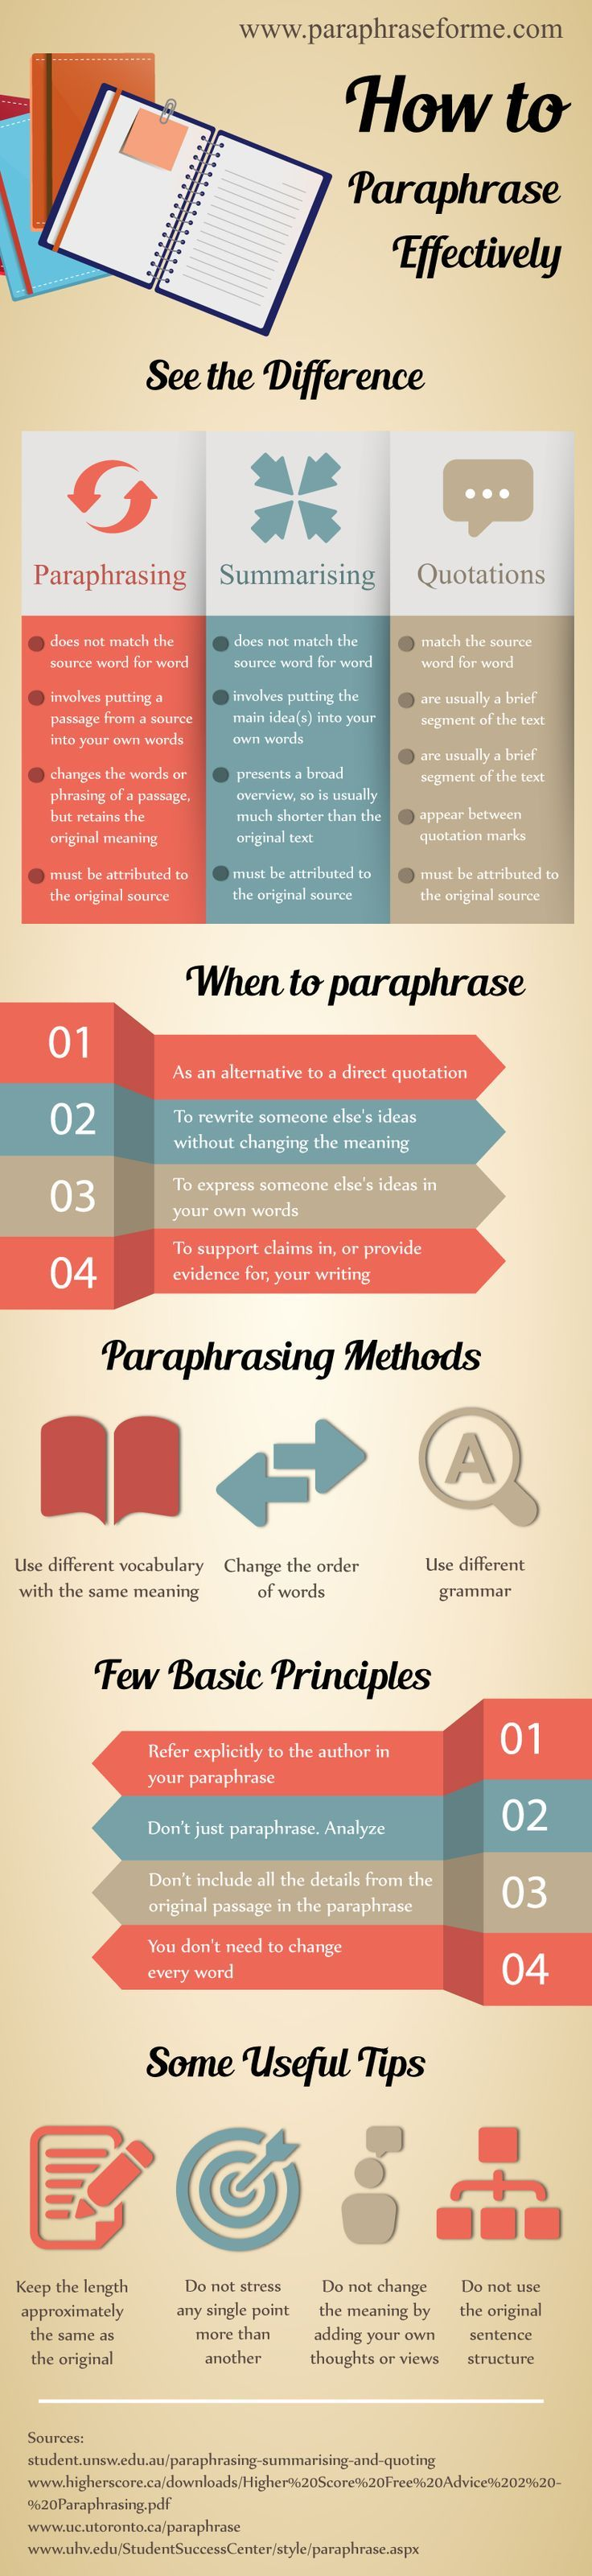 best essay writing ideas essay writing tips you will get the information about how to paraphrase effectively please cleck here